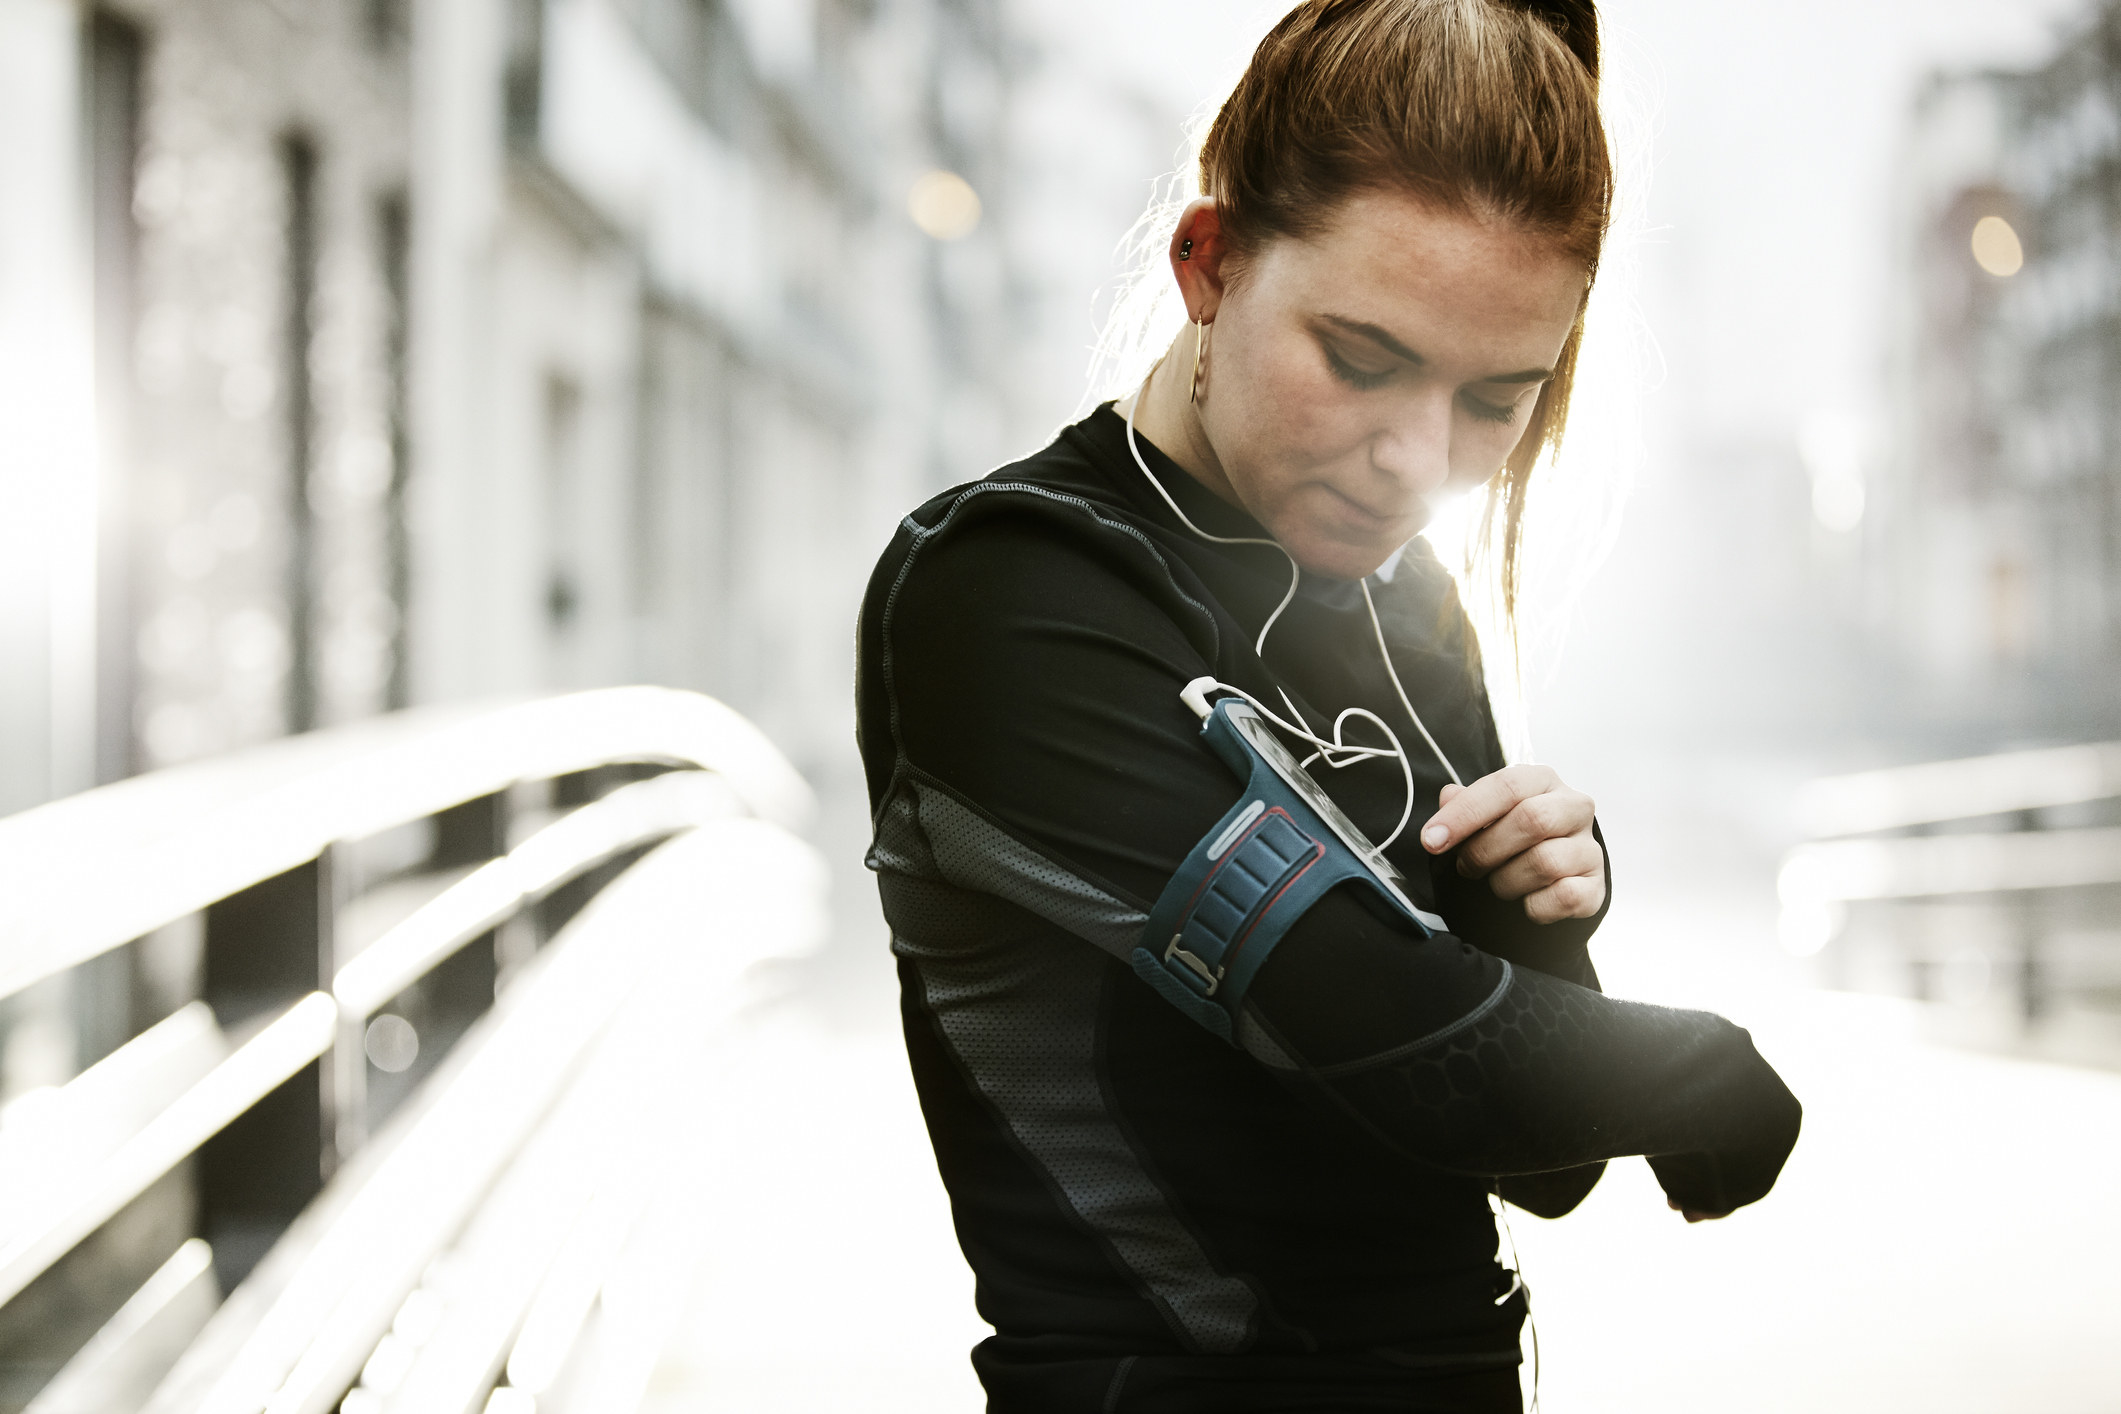 A model wearing an armband with their phone attached to it for a workout